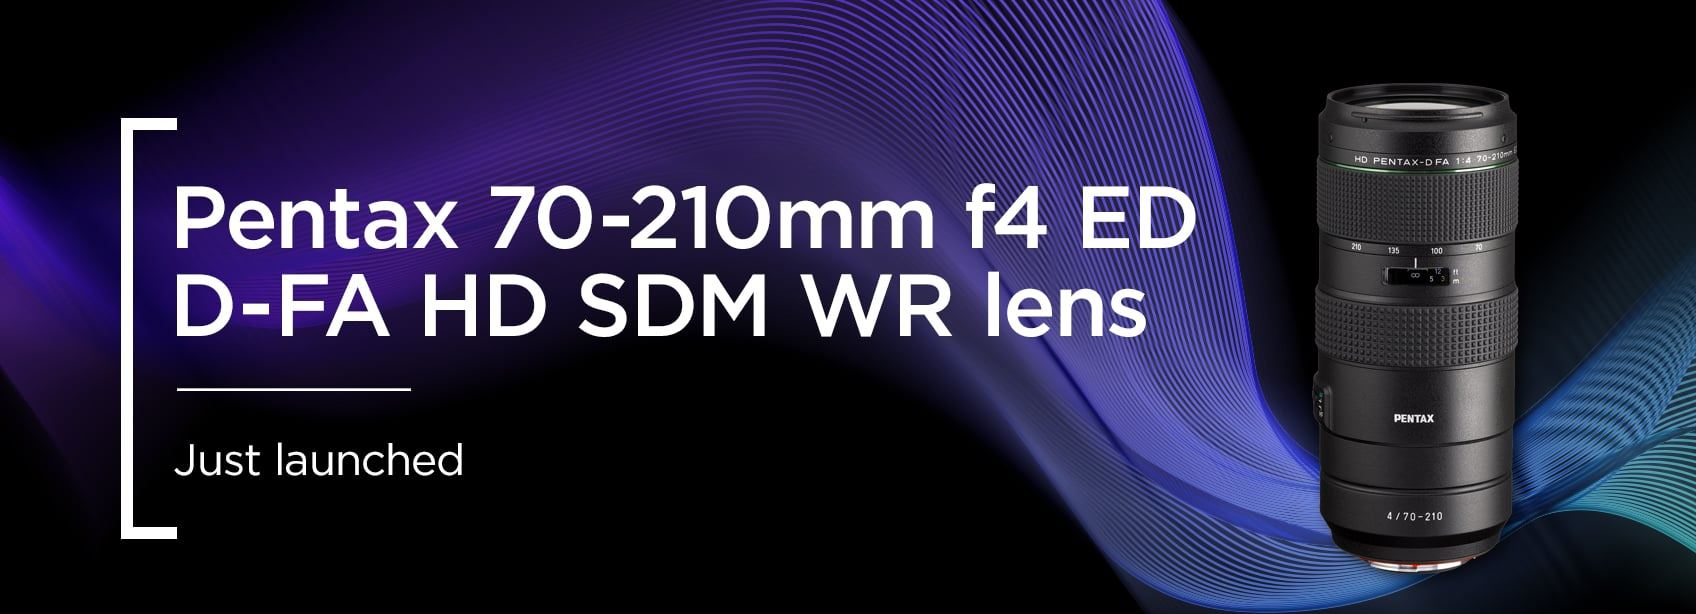 Pentax 70-210mm f4 ED D-FA HD SDM WR Lens - just launched